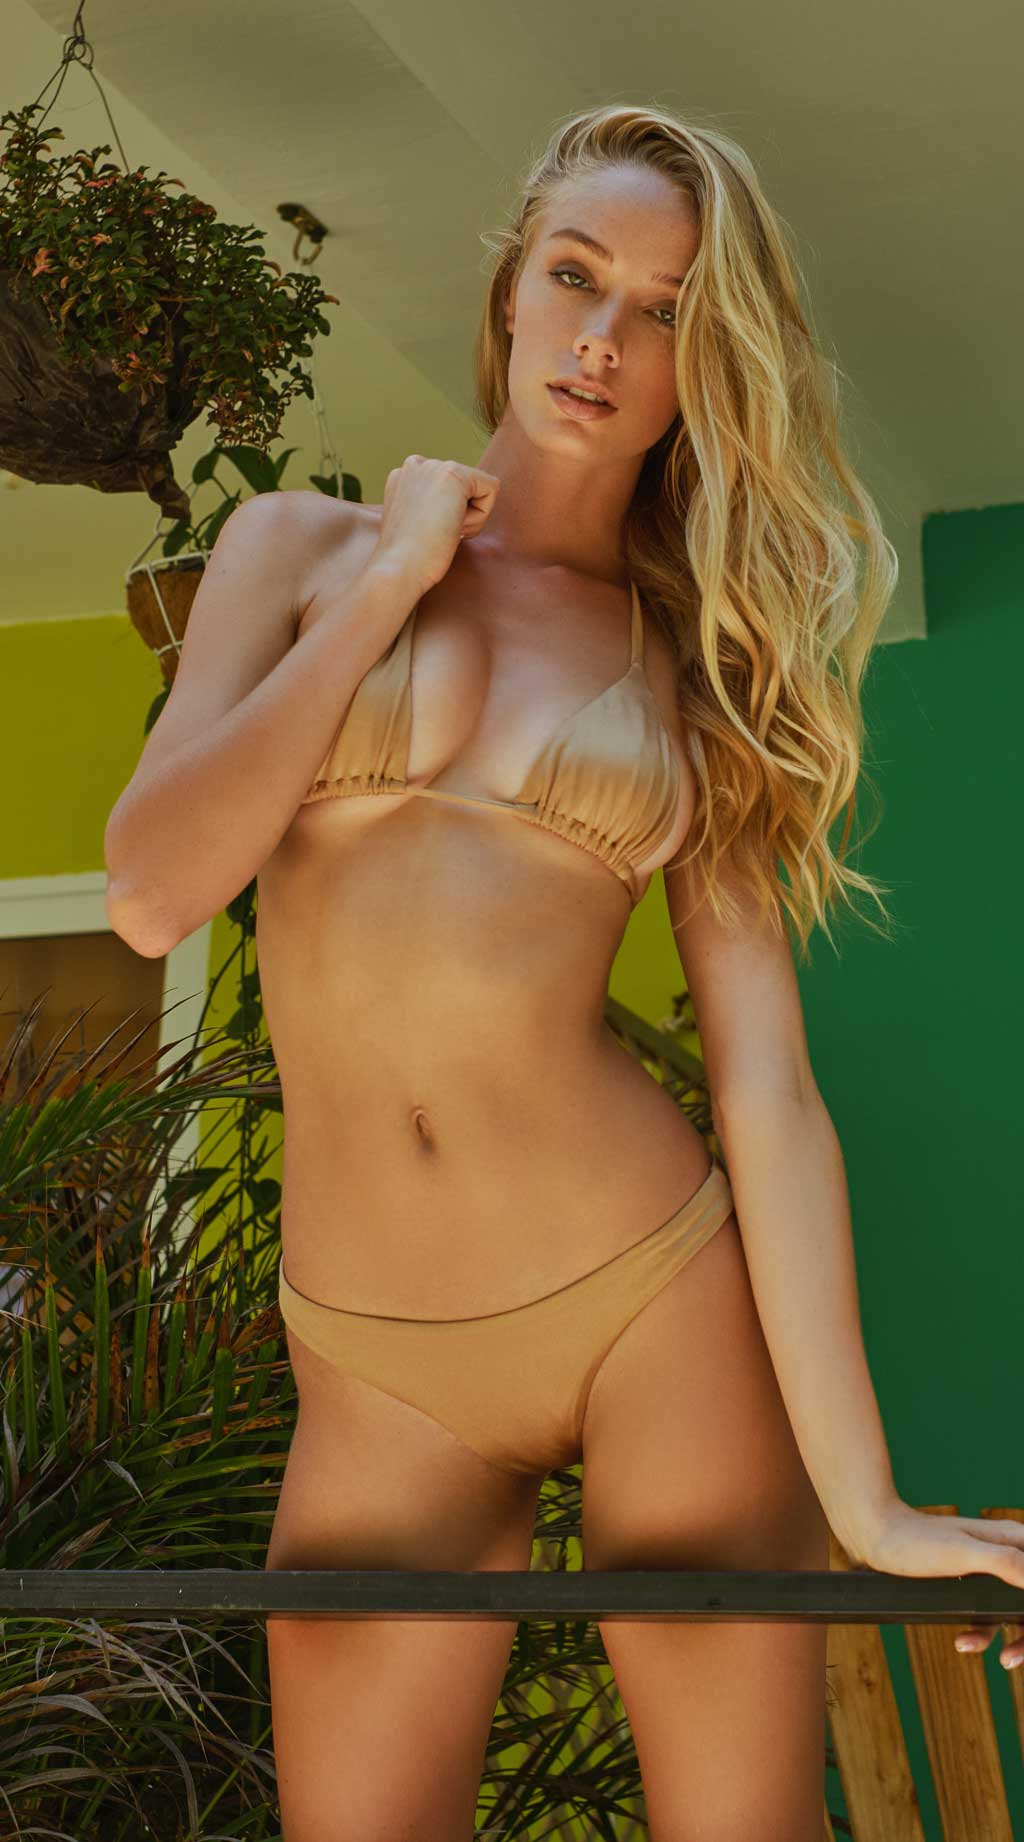 La Isla Shop | La Isla Swimwear and Bikinis